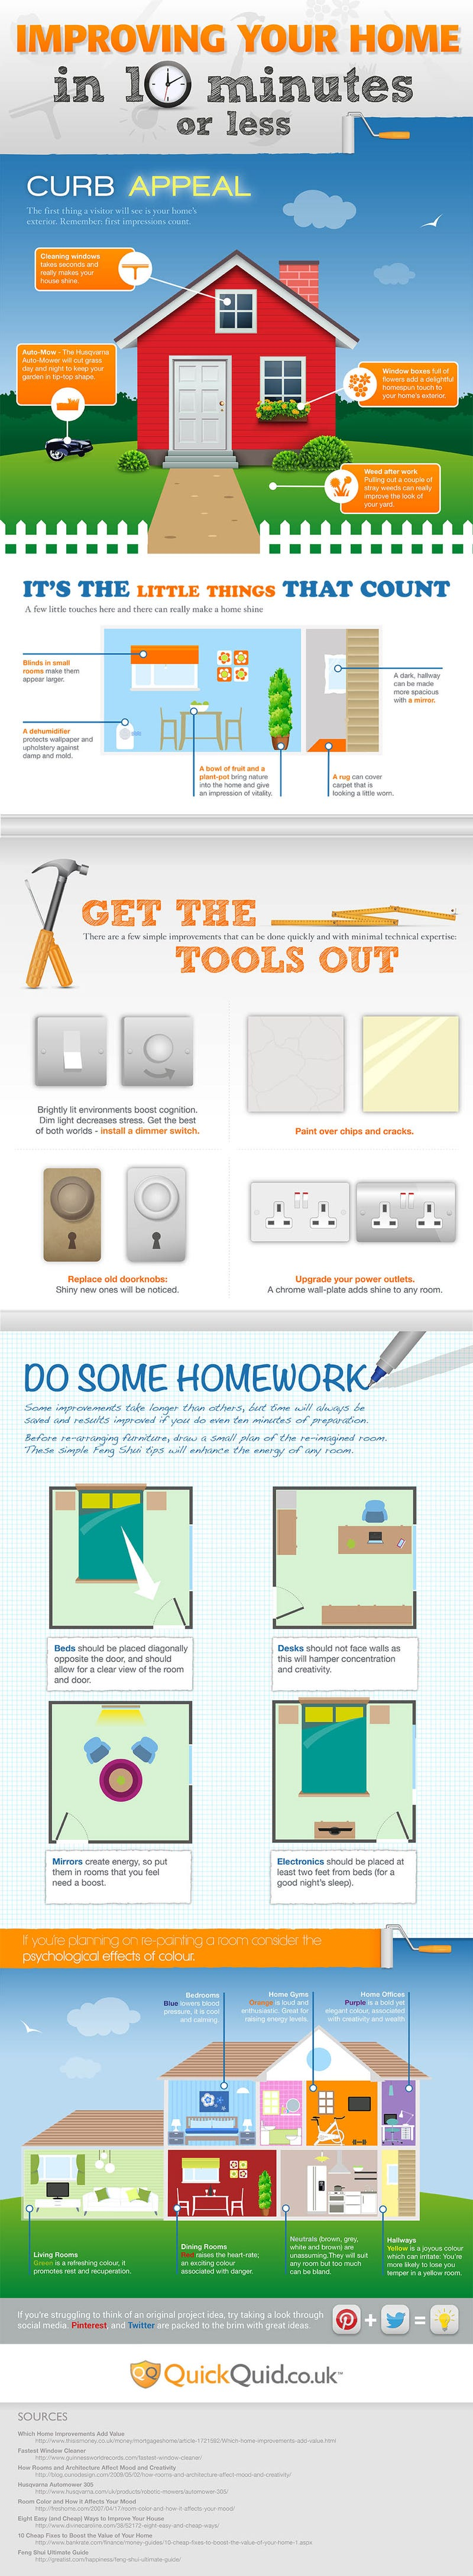 This Graphic Shows You Quick Home Improvement Projects You Can Tackle